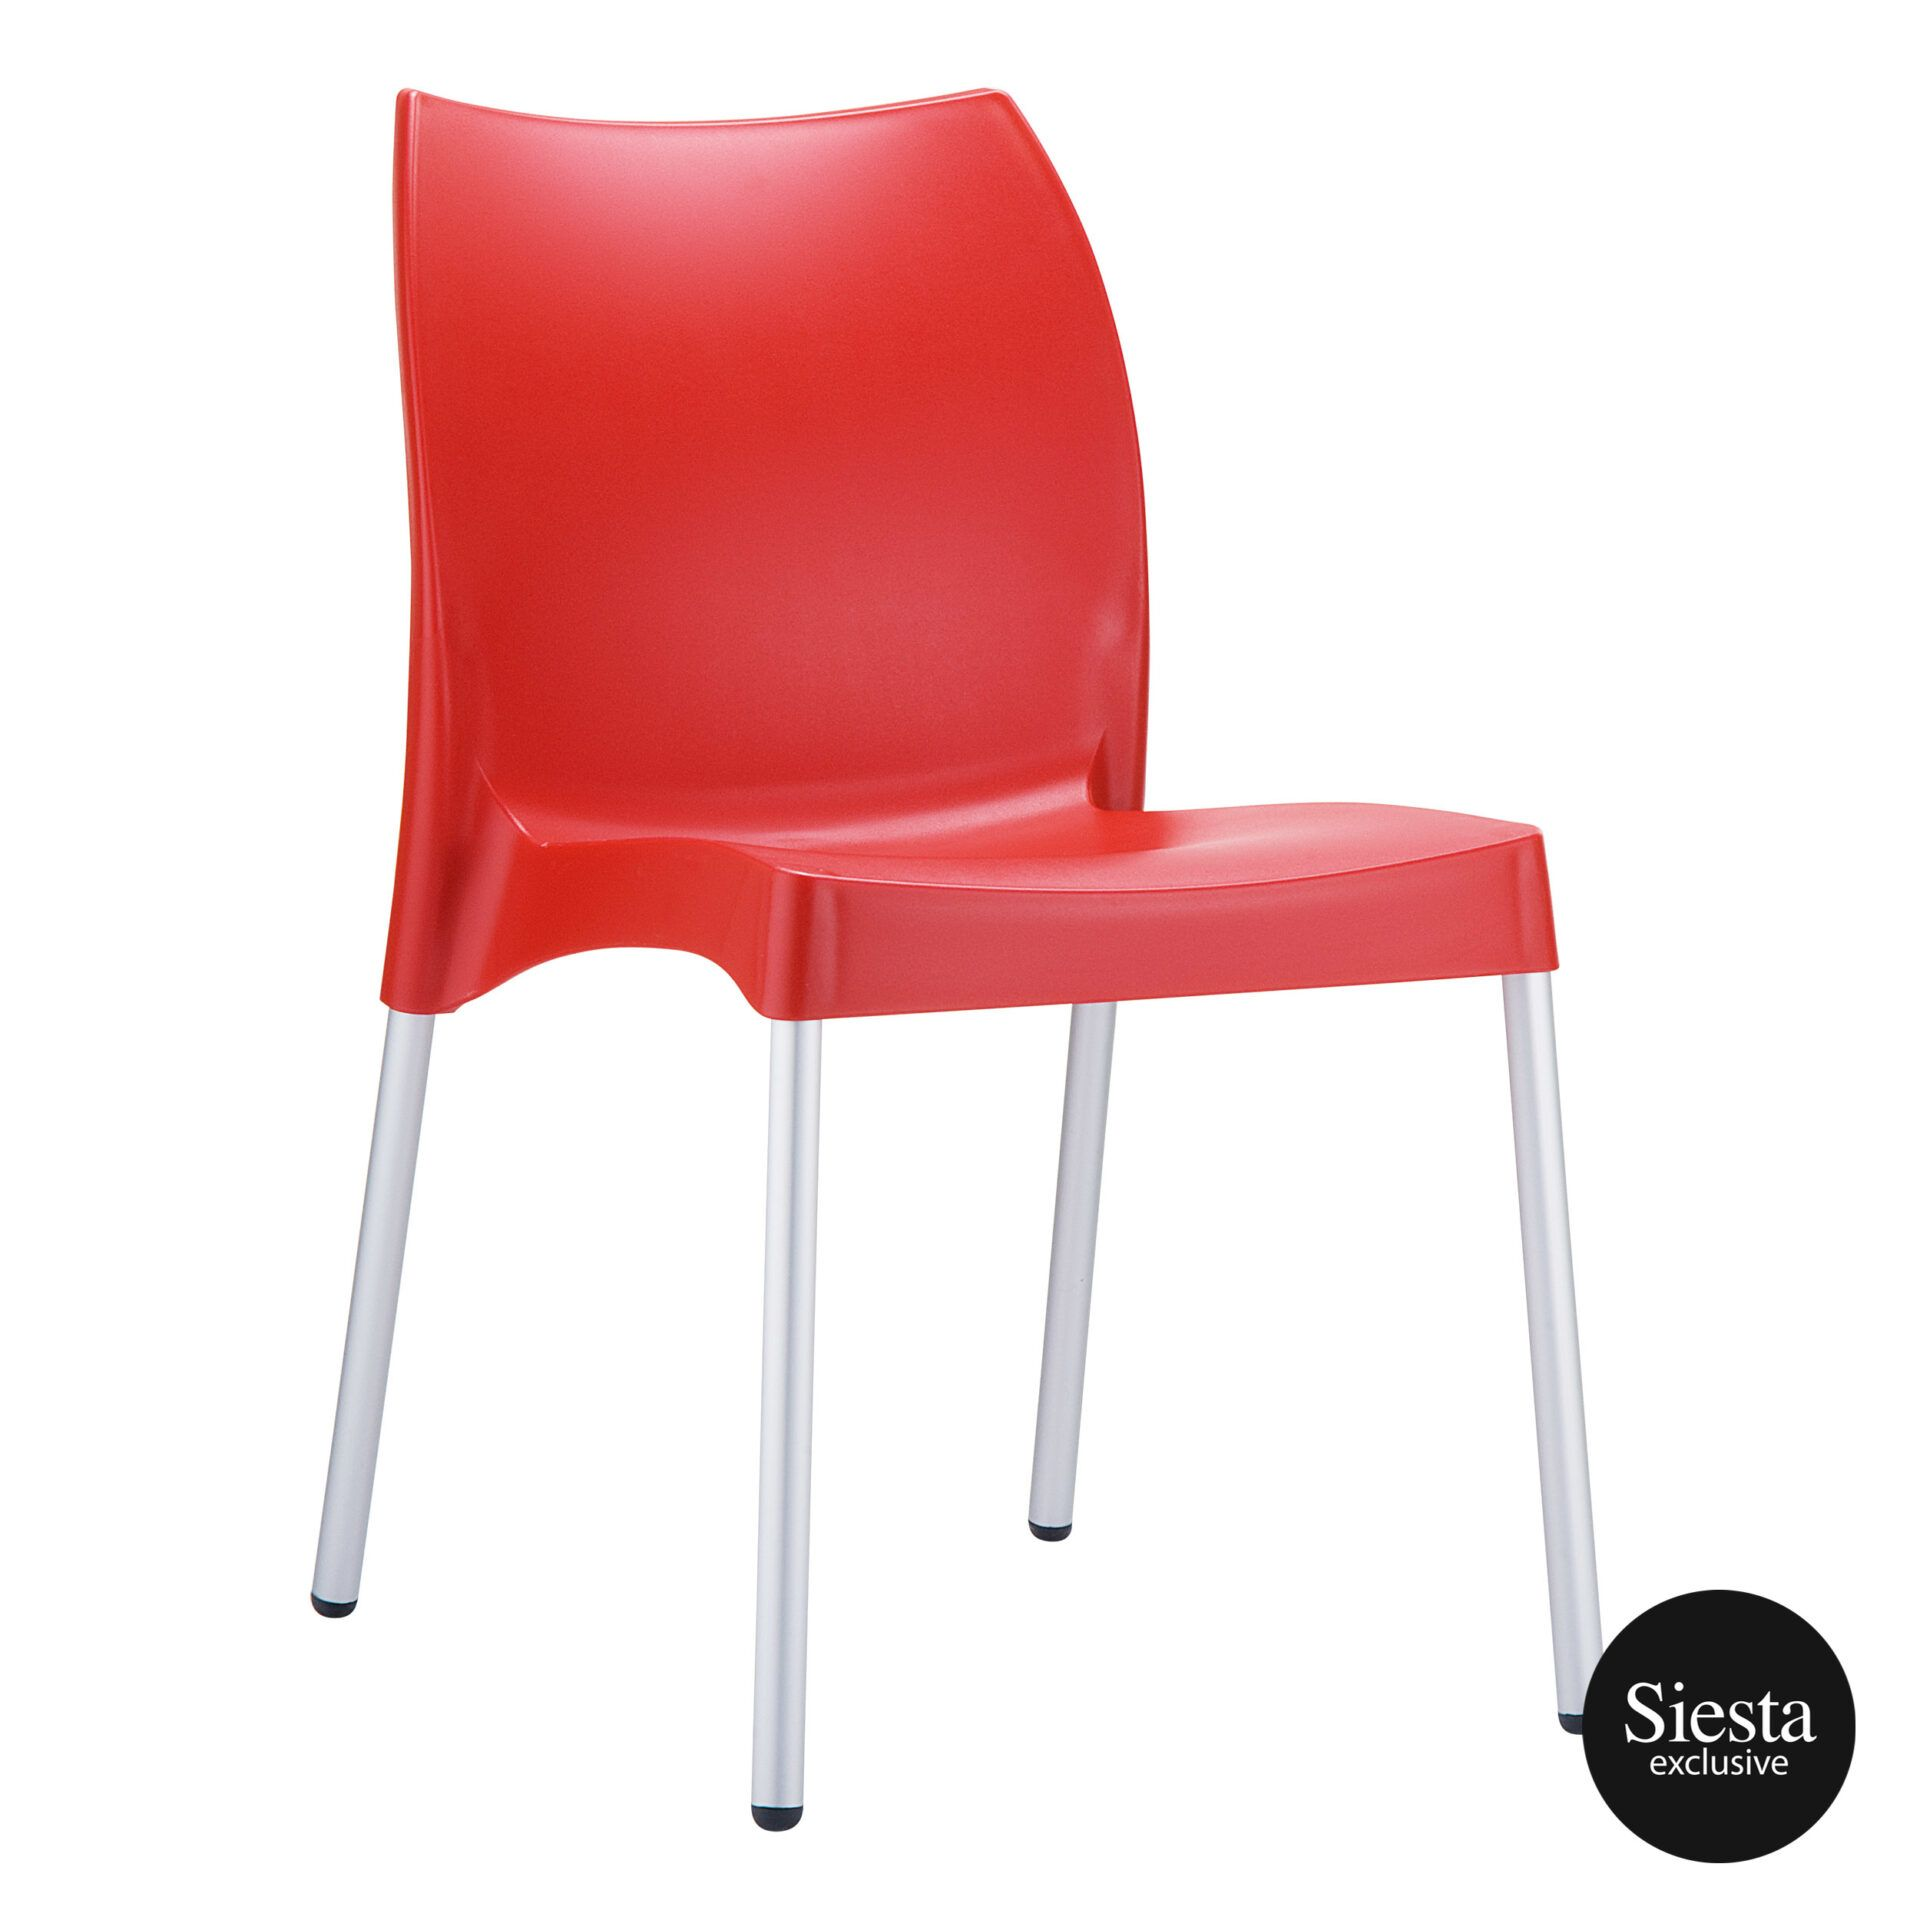 commercial outdoor hospitality seating vita chair red front side 1